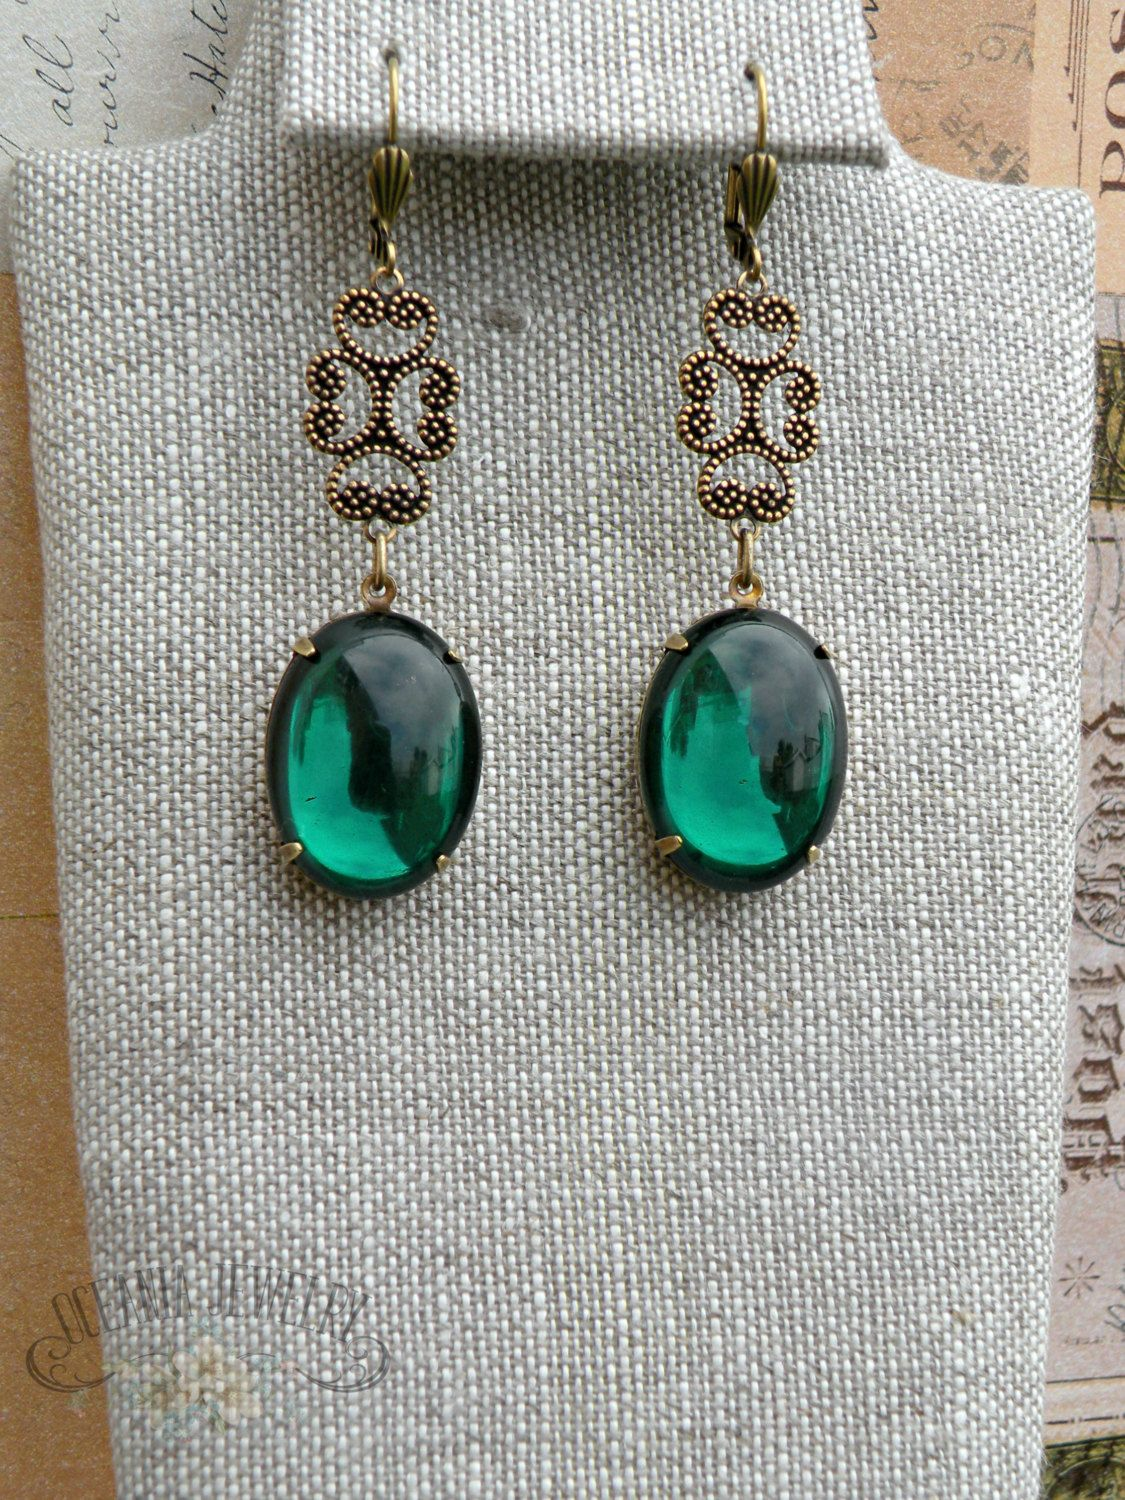 c53b74df1 Holiday Party Jewelry, Downton Abbey Earrings, Green Bridal Jewelry,  Emerald Chandelier Earrings, Vintage Bridal Earrings, Art Deco Earring by  ...